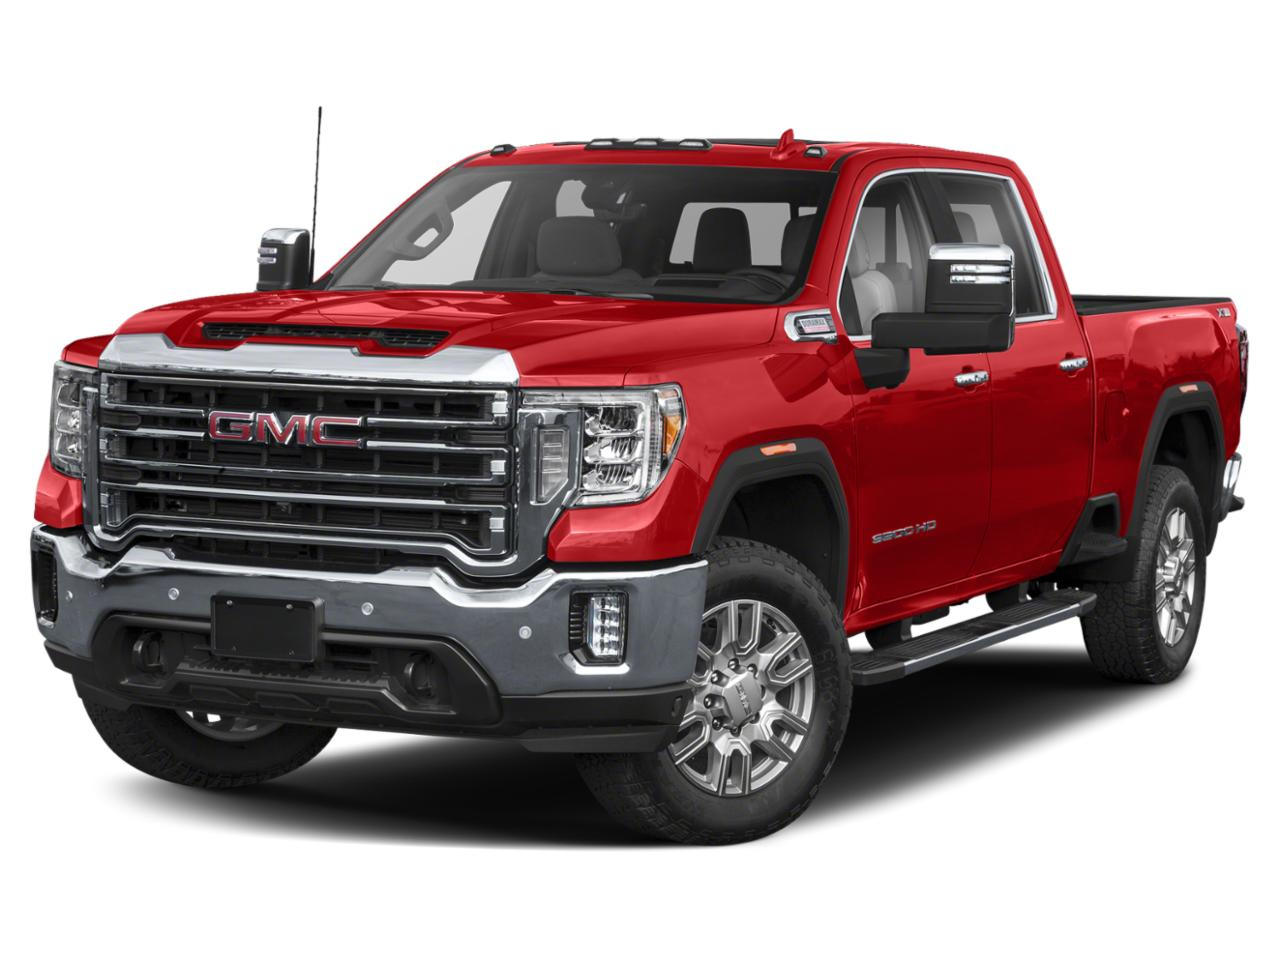 2021 GMC Sierra 3500HD Vehicle Photo in Washington, NJ 07882